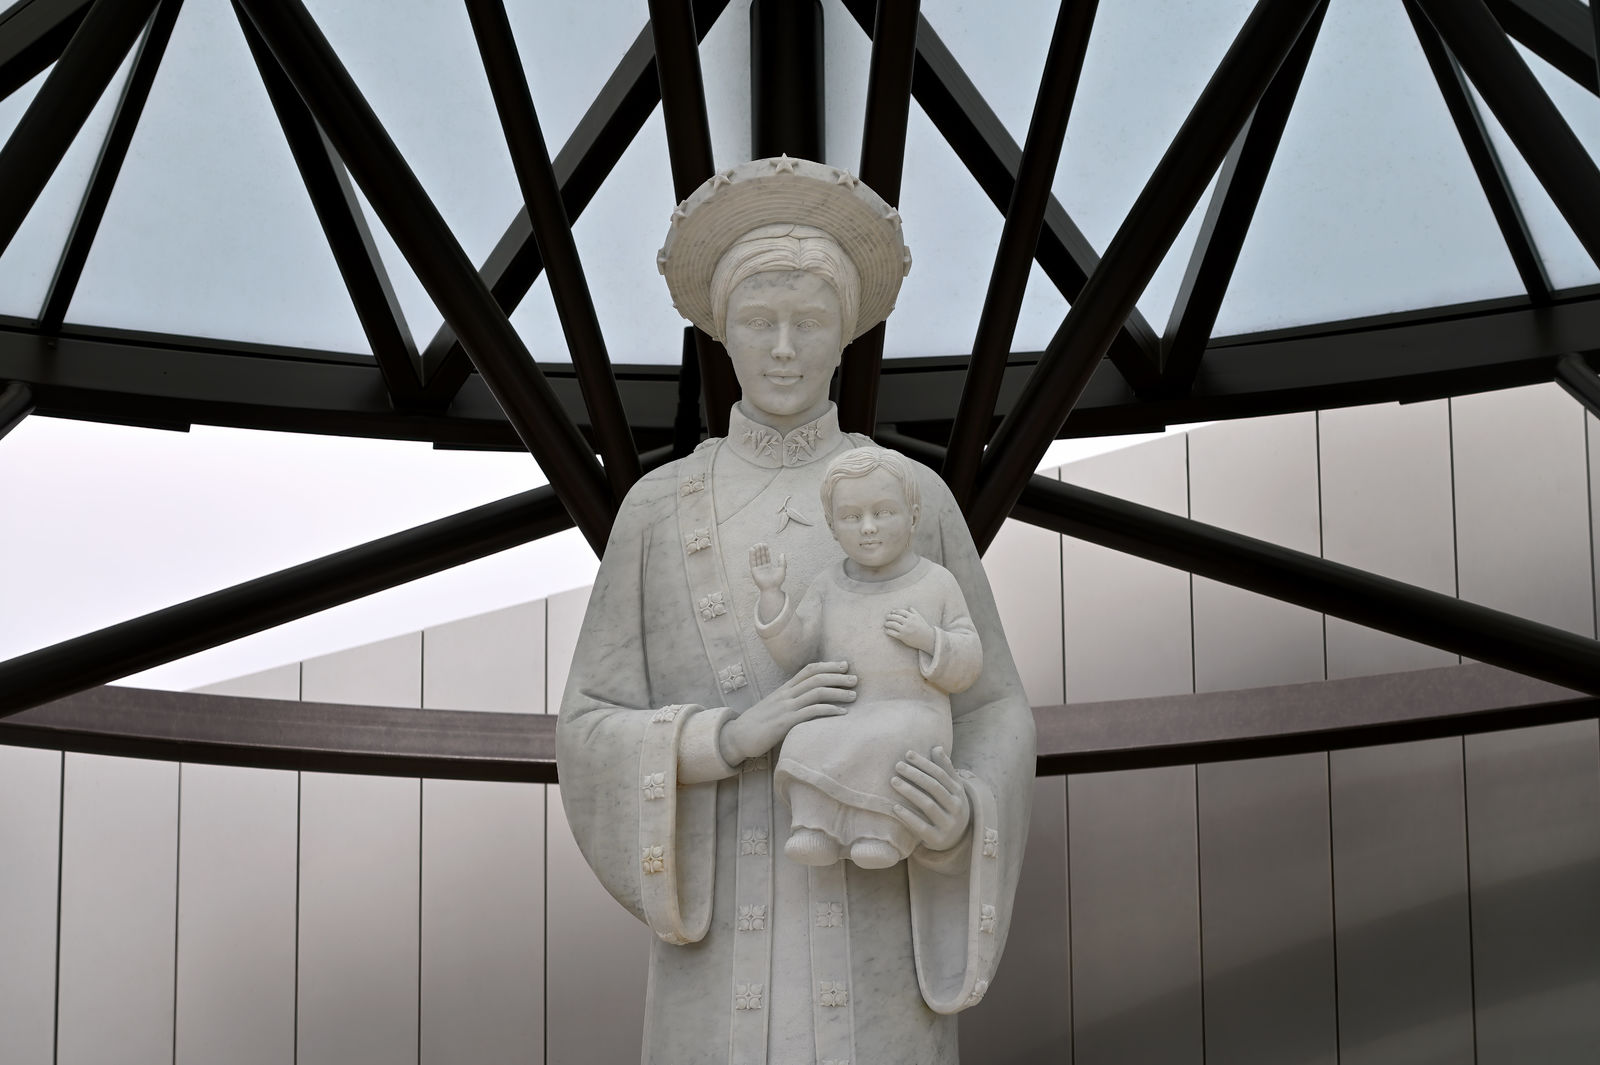 The Our Lady of La Vang statue depicts the Virgin Mary, with Baby Jesus in her arms, as they are believed to have appeared in a 1798 Marian apparition in Vietnam. The Diocese of Orange and Christ Cathedral unveiled the shrine before thousands of supporters during an elaborate July 17 solemn blessing day that included a Mass, processional and live entertainment. Photo courtesy Diocese of Orange.